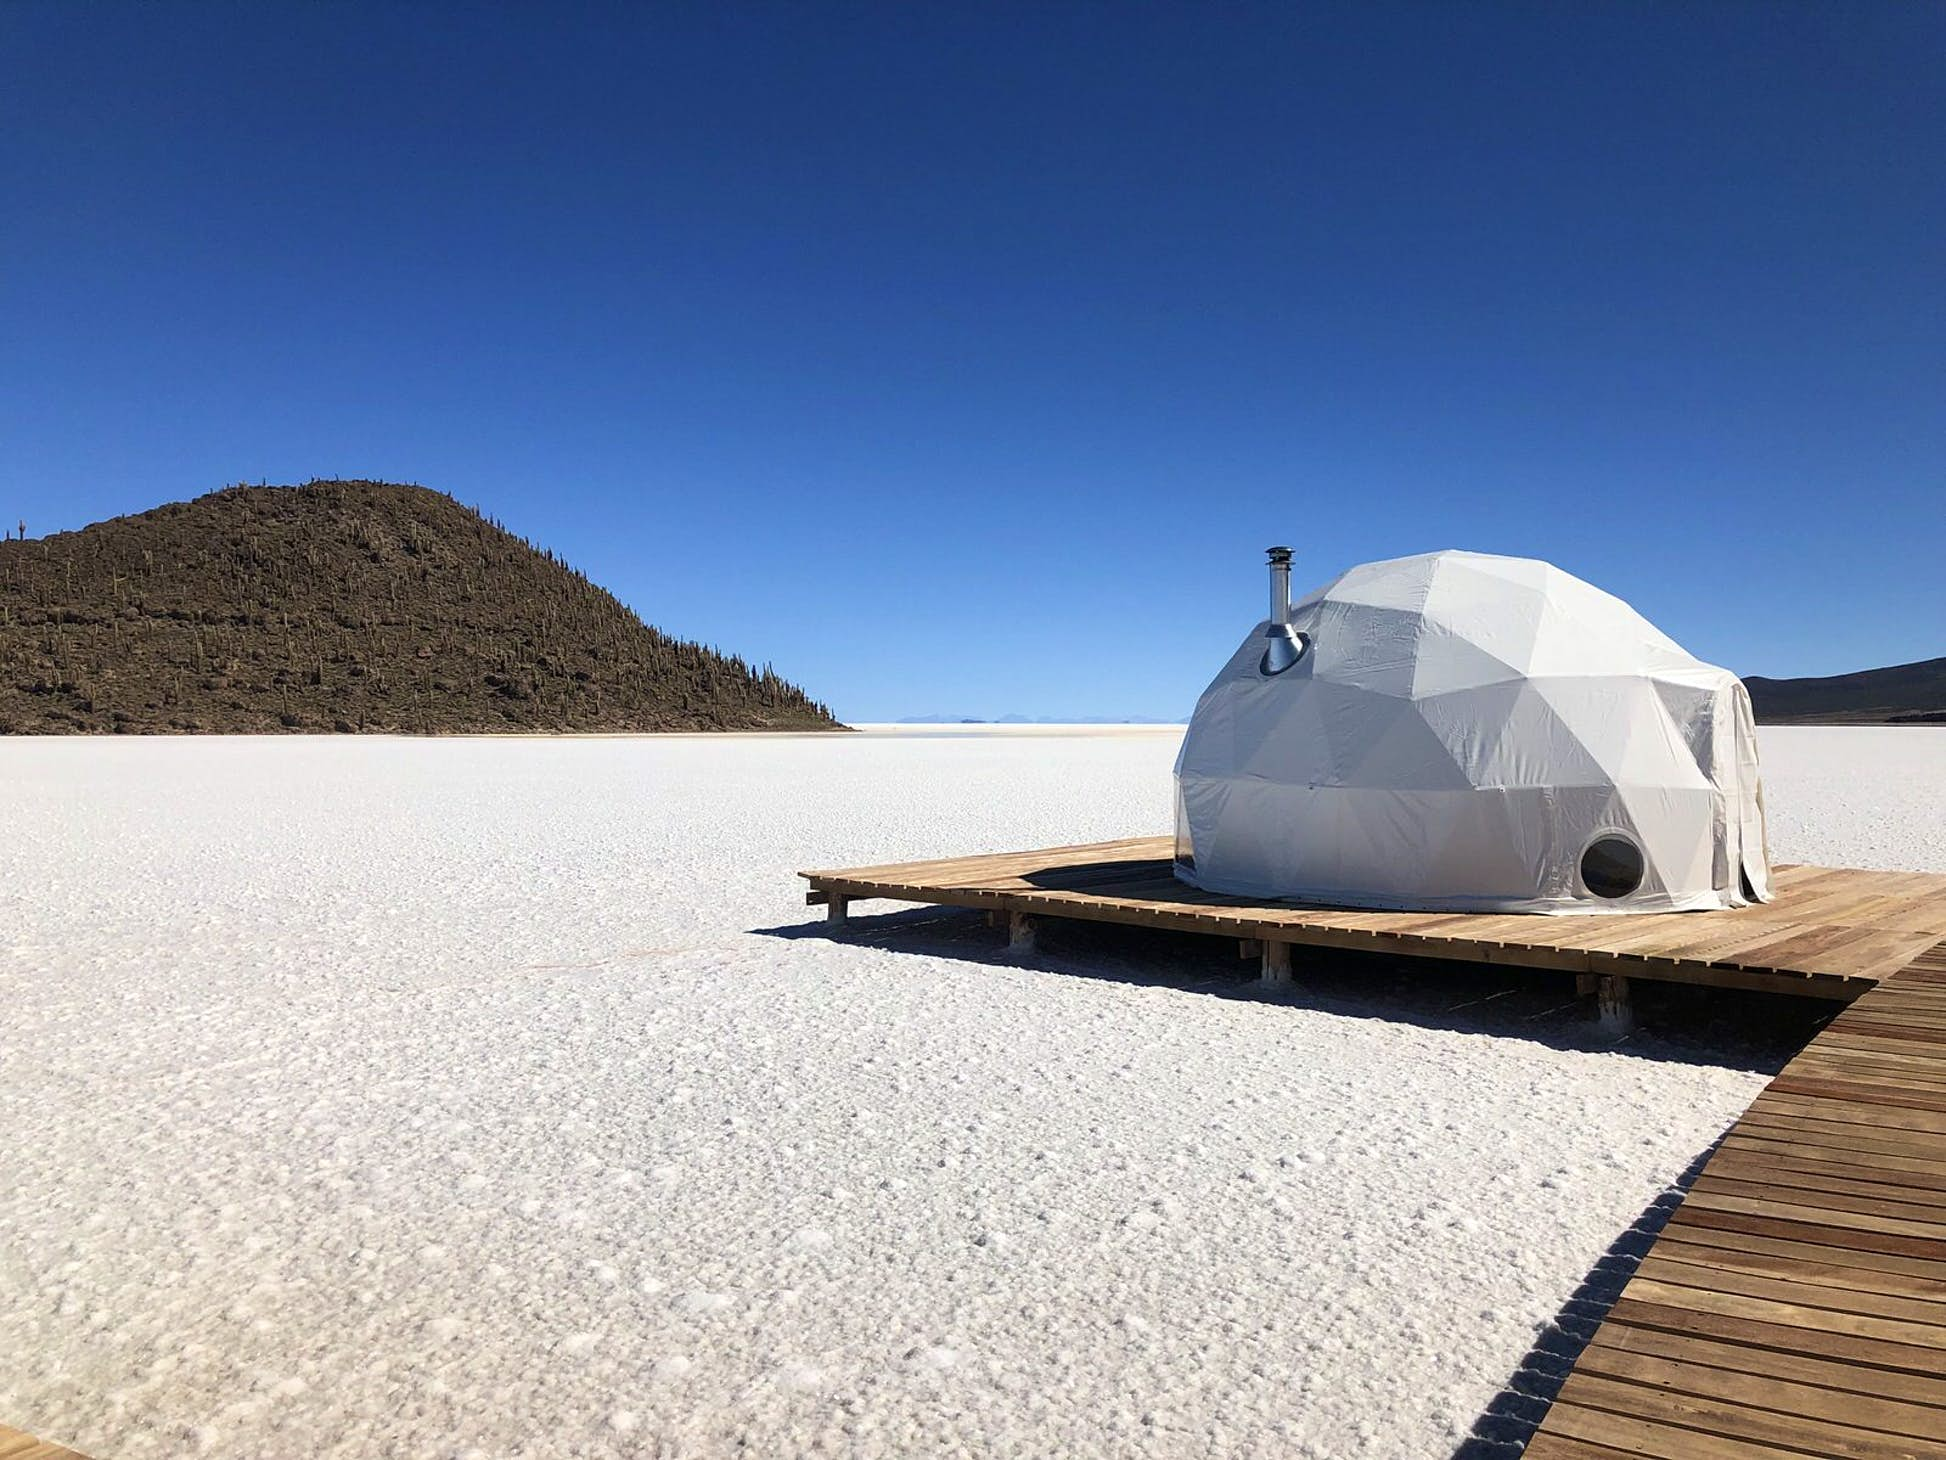 This brand new glamping experience in Bolivia's salt flats is now accepting bookings © Kacha Lodge